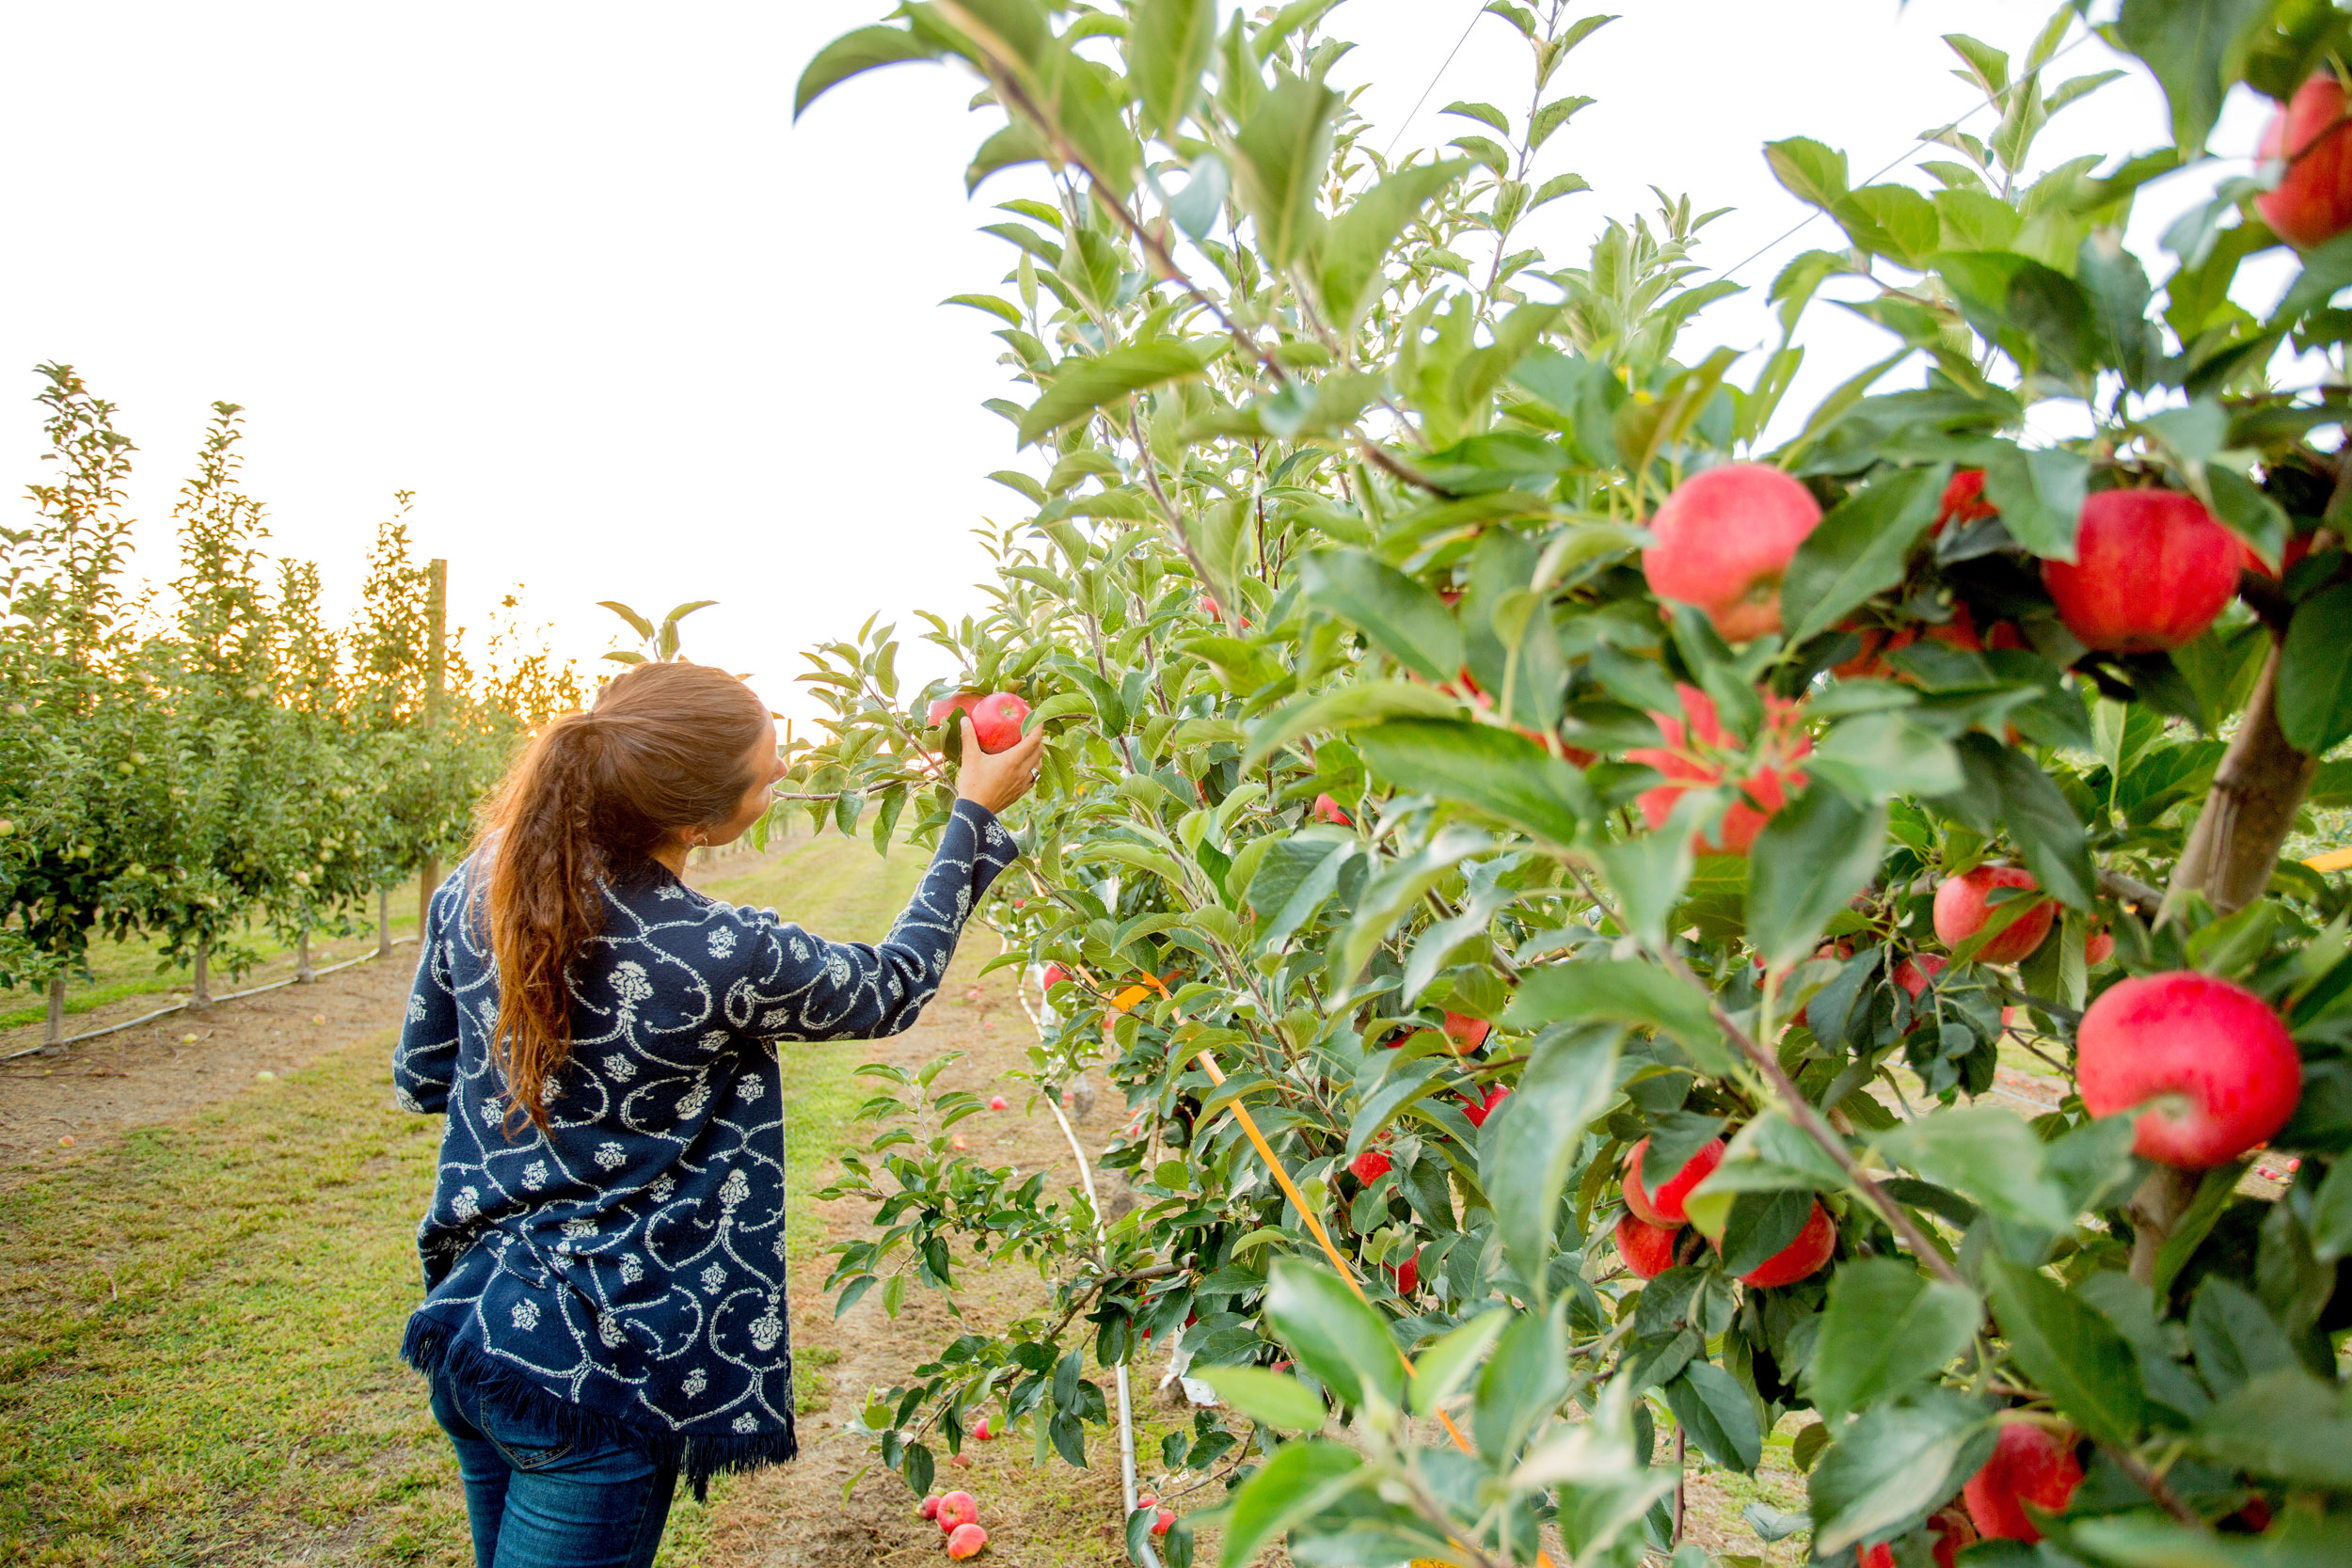 apple-picking-health-coach-personal-brand-photography.jpg